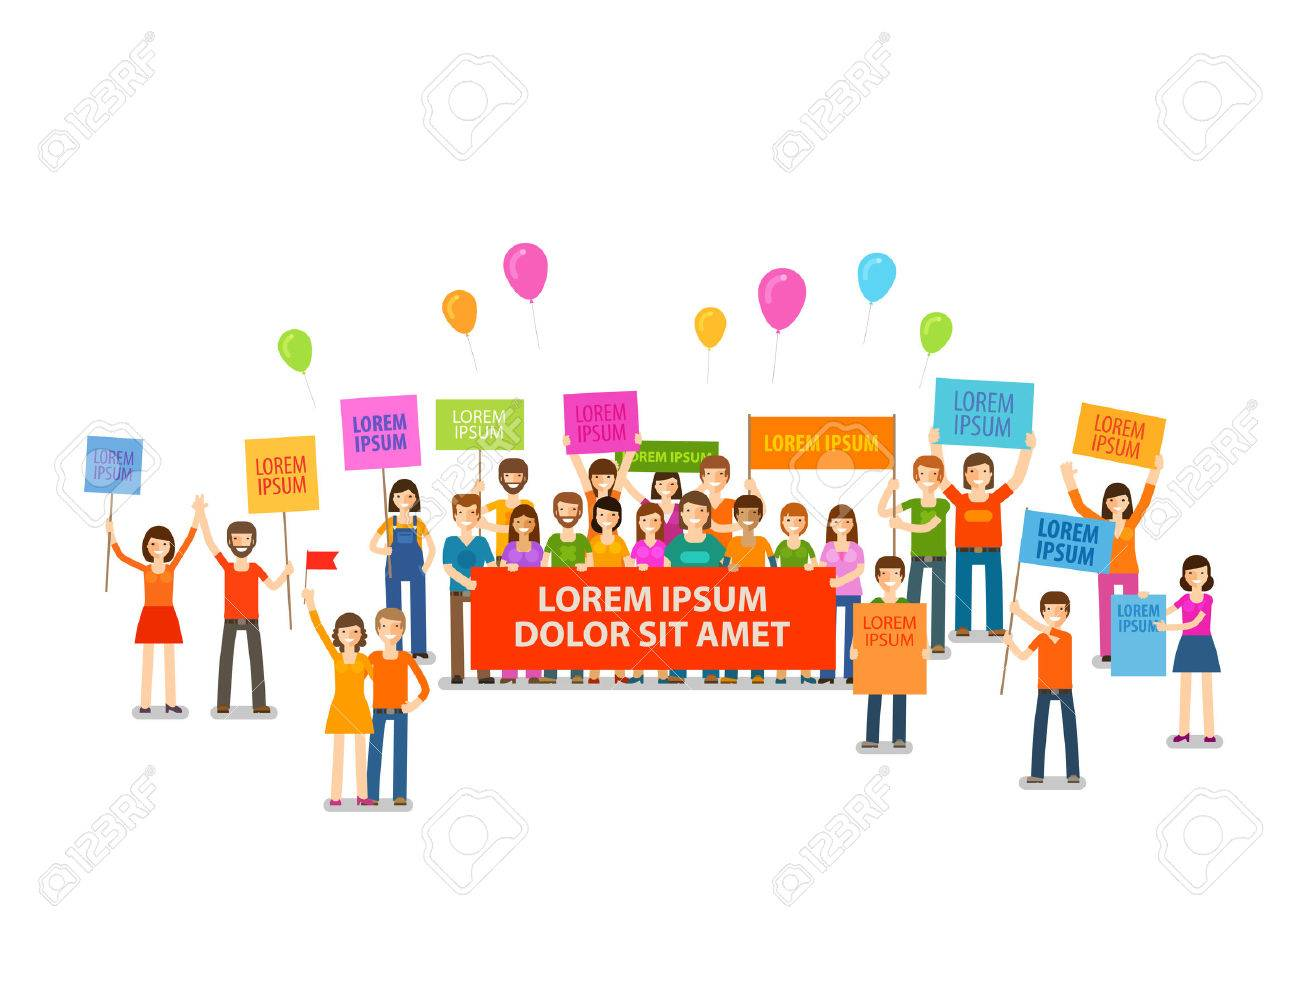 Holiday, demonstration, rally. Crowd of people with placards Vector illustration - 61268298